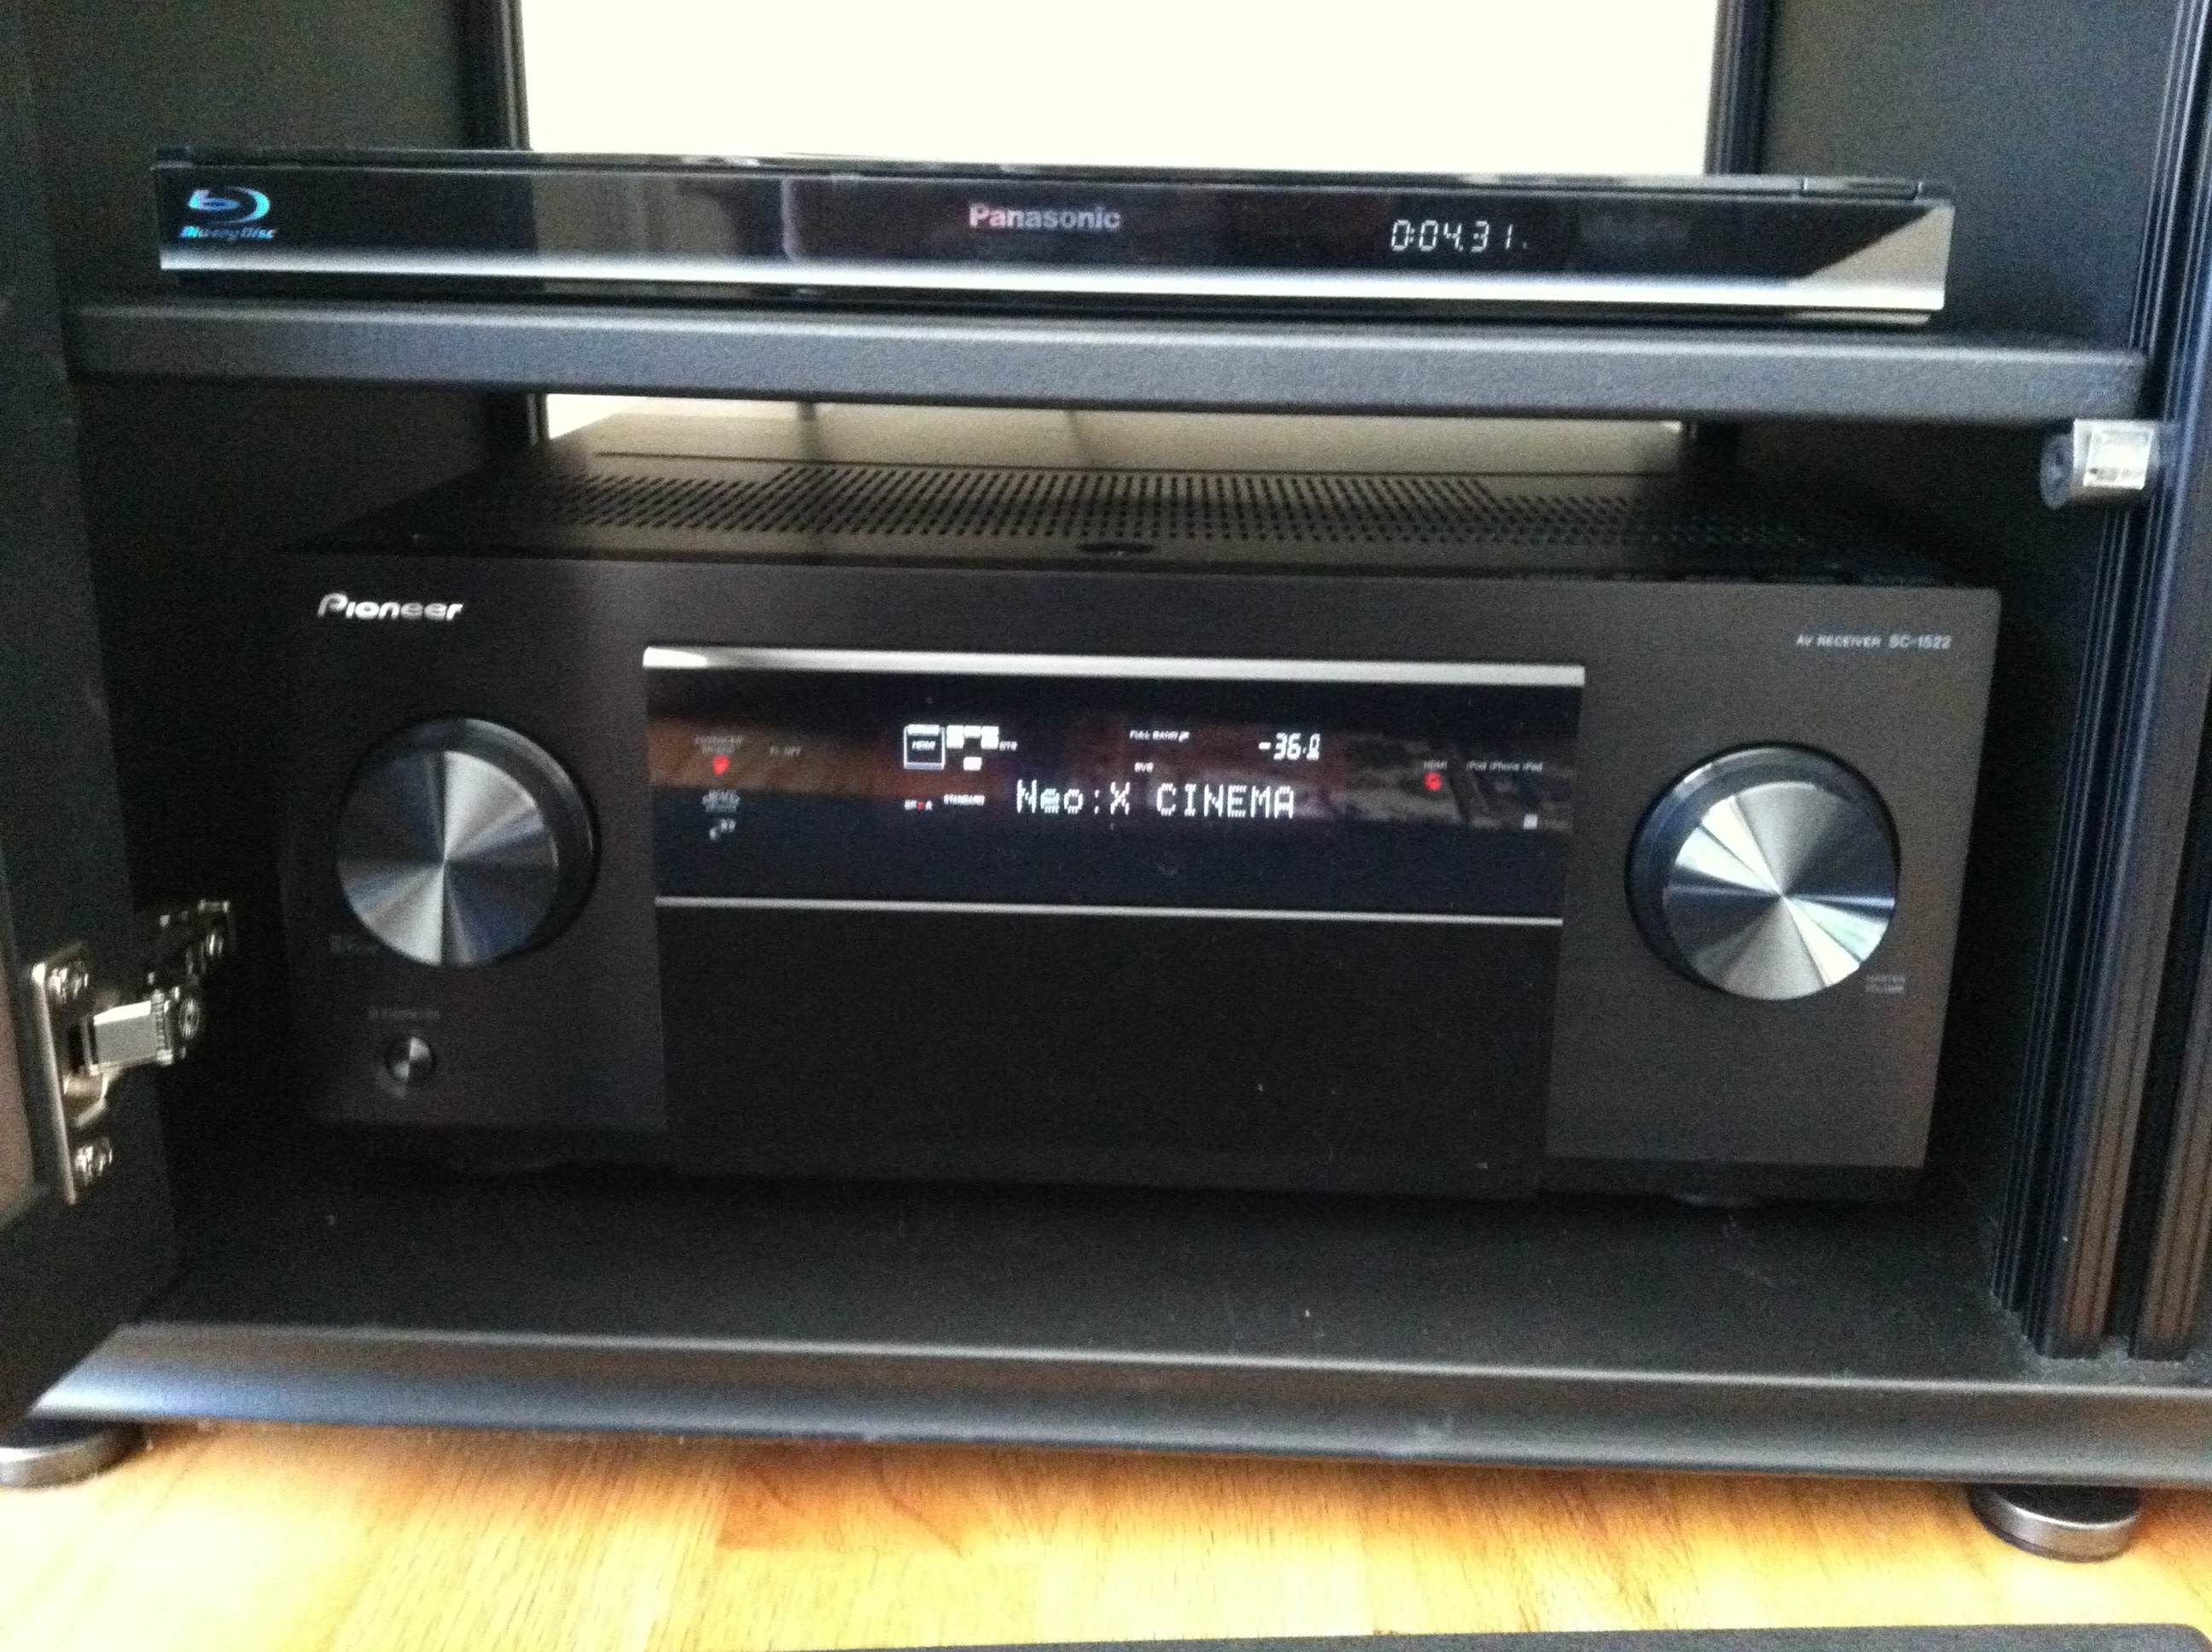 Official Pioneer Sc 1522 92 Network Ready Av Receiver Owners